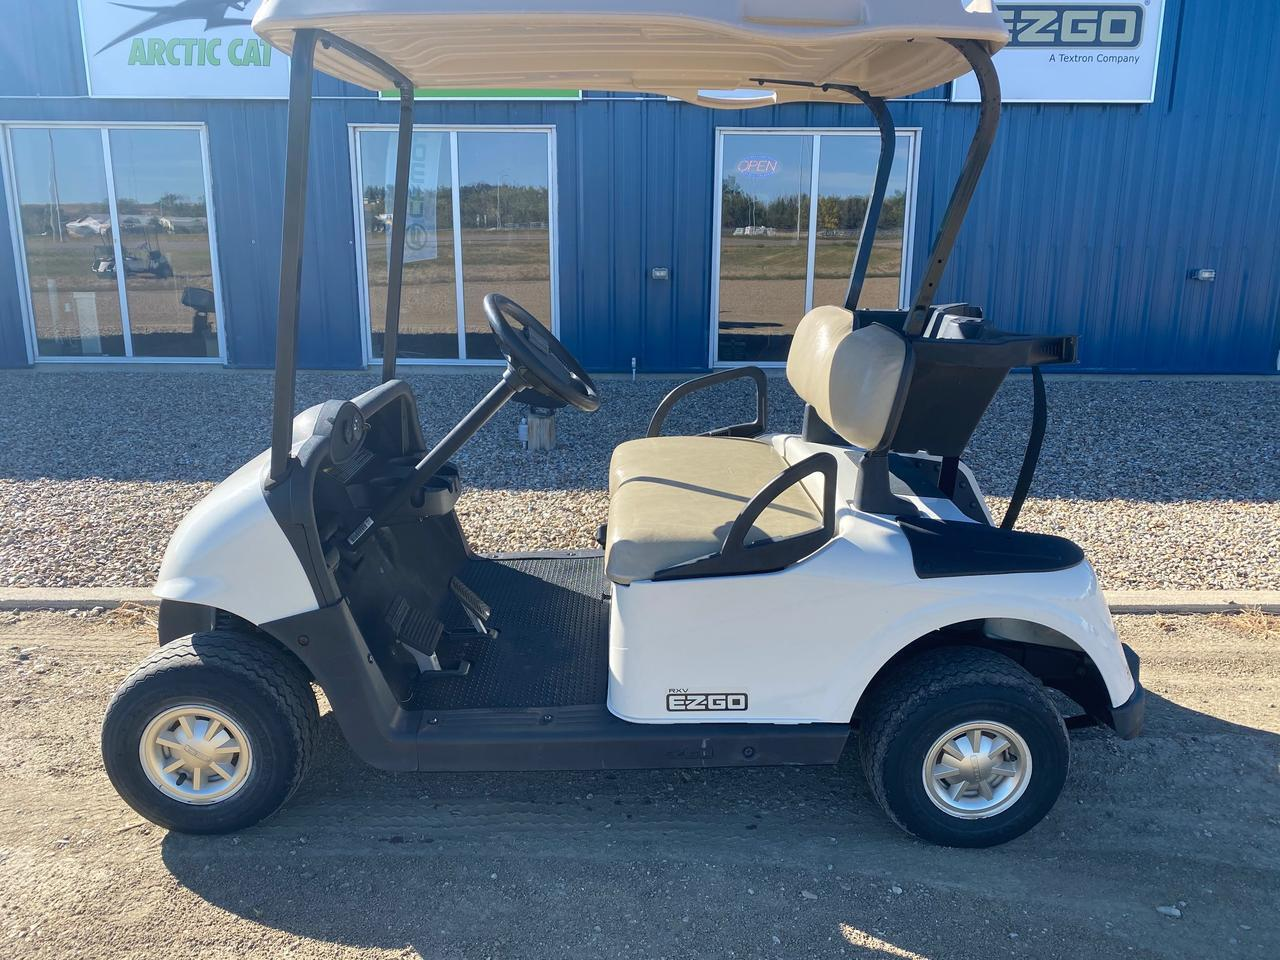 2010 EZGO RXV GAS CART Swift Current SK